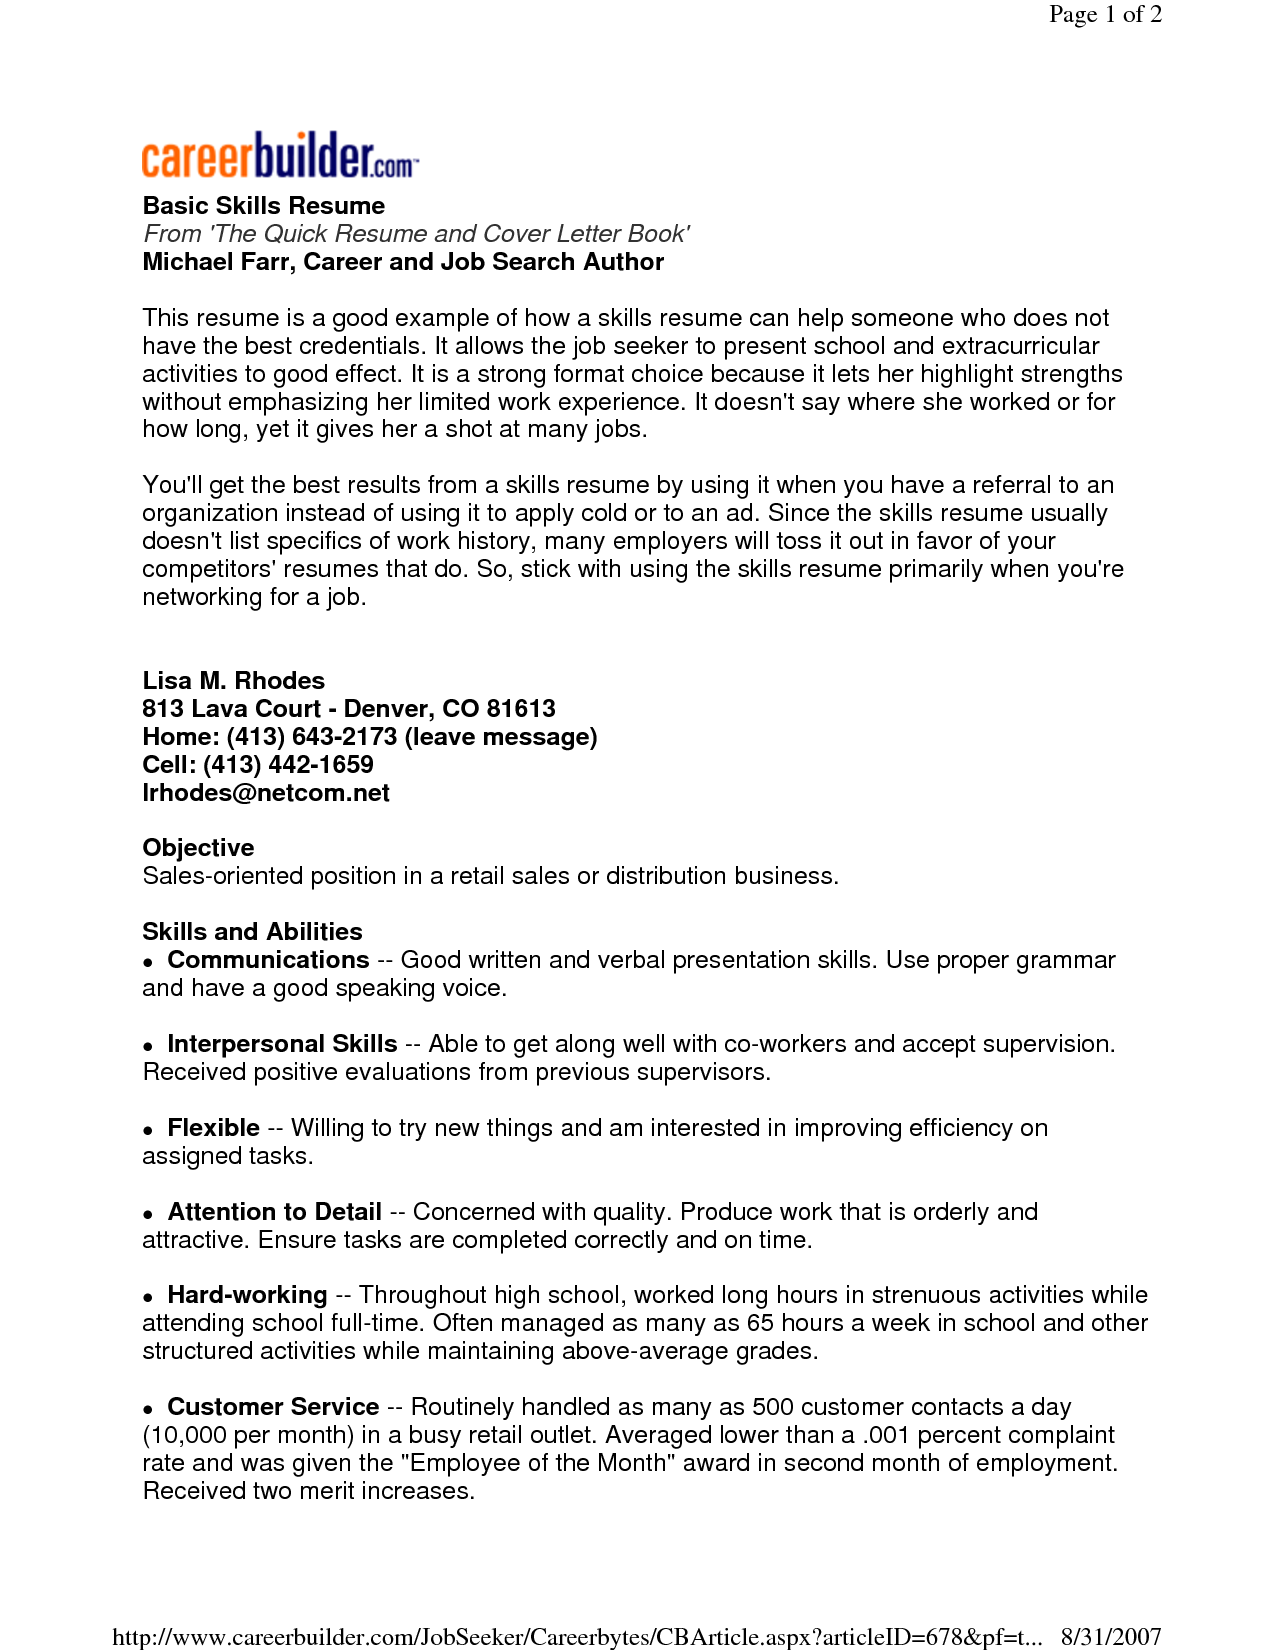 Retail Job Description For Resume Resume Objective Statement Sample Http Jobresumesample Find Here